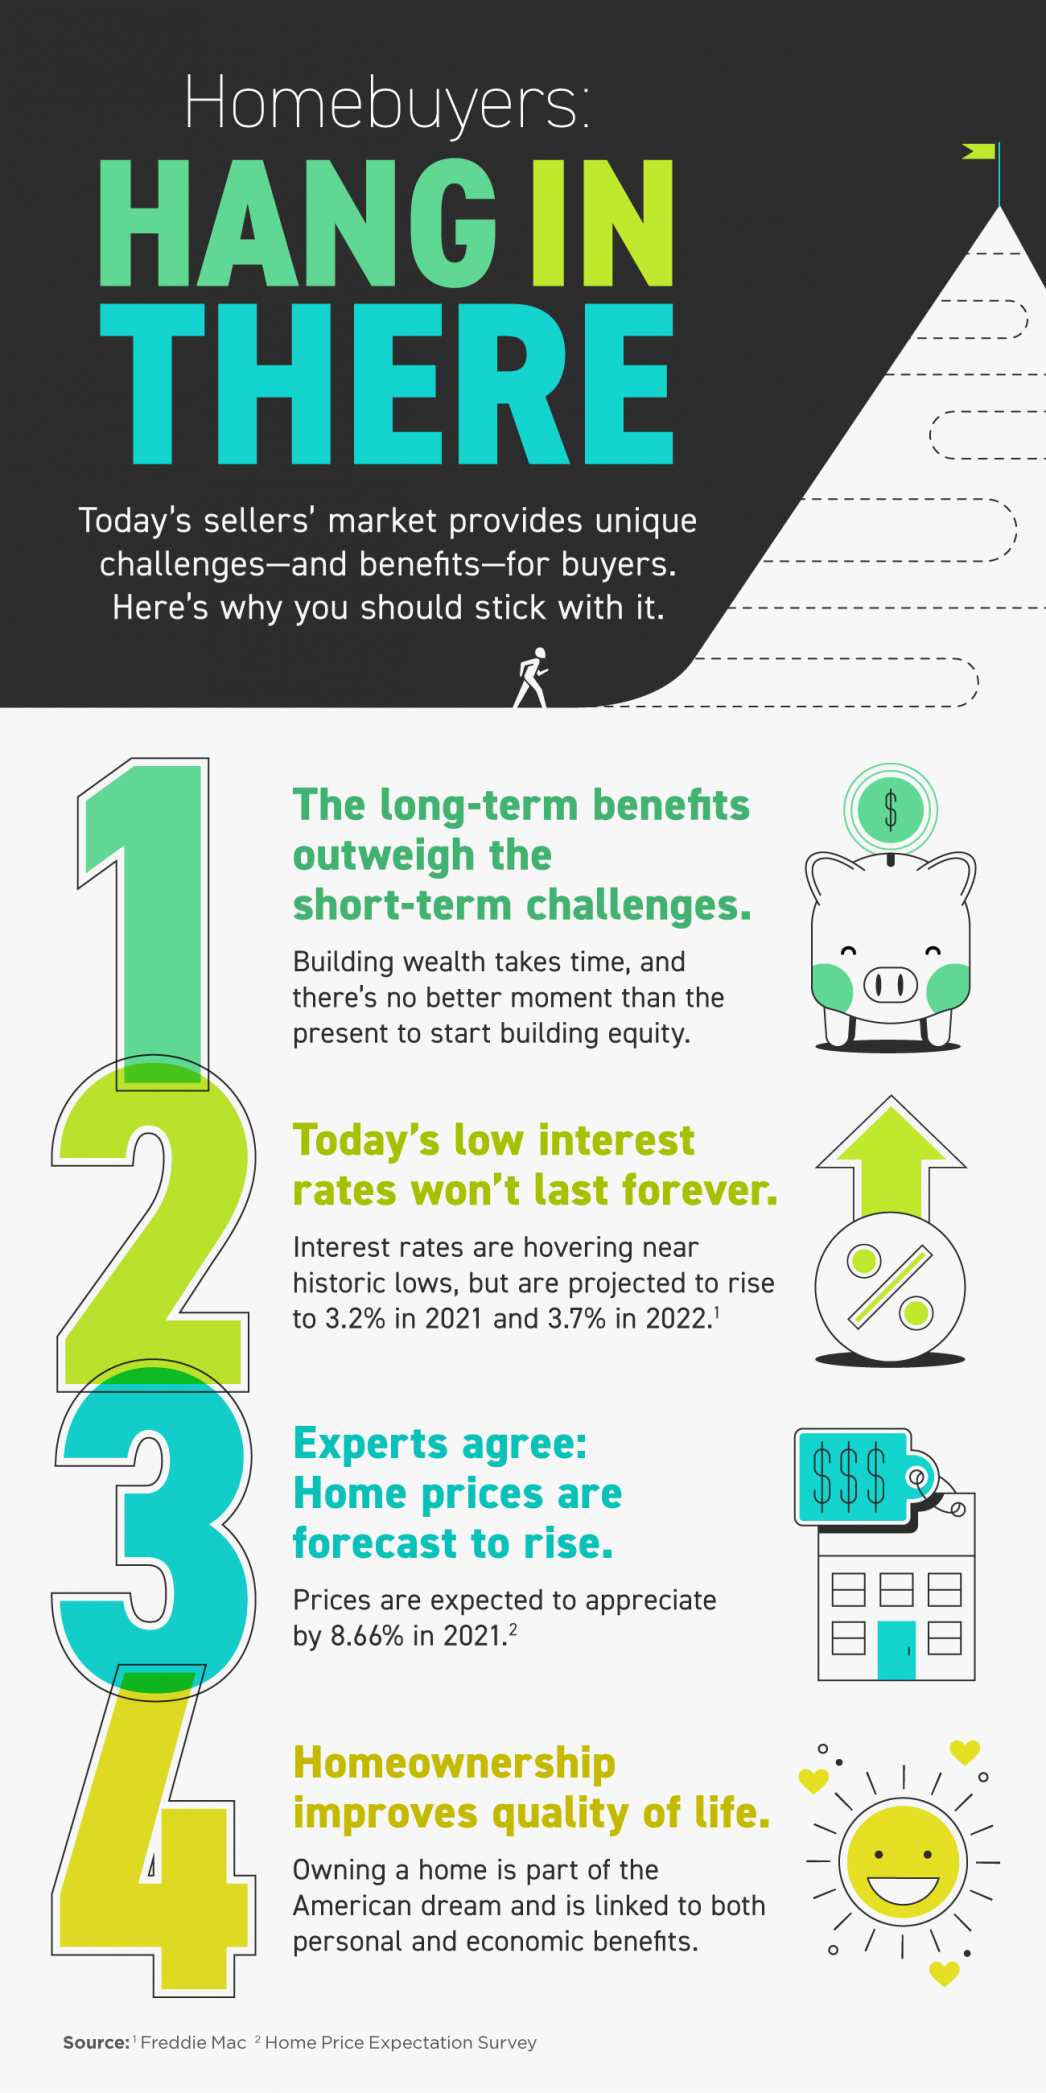 Homebuyers: Hang in There [INFOGRAPHIC] | MyKCM